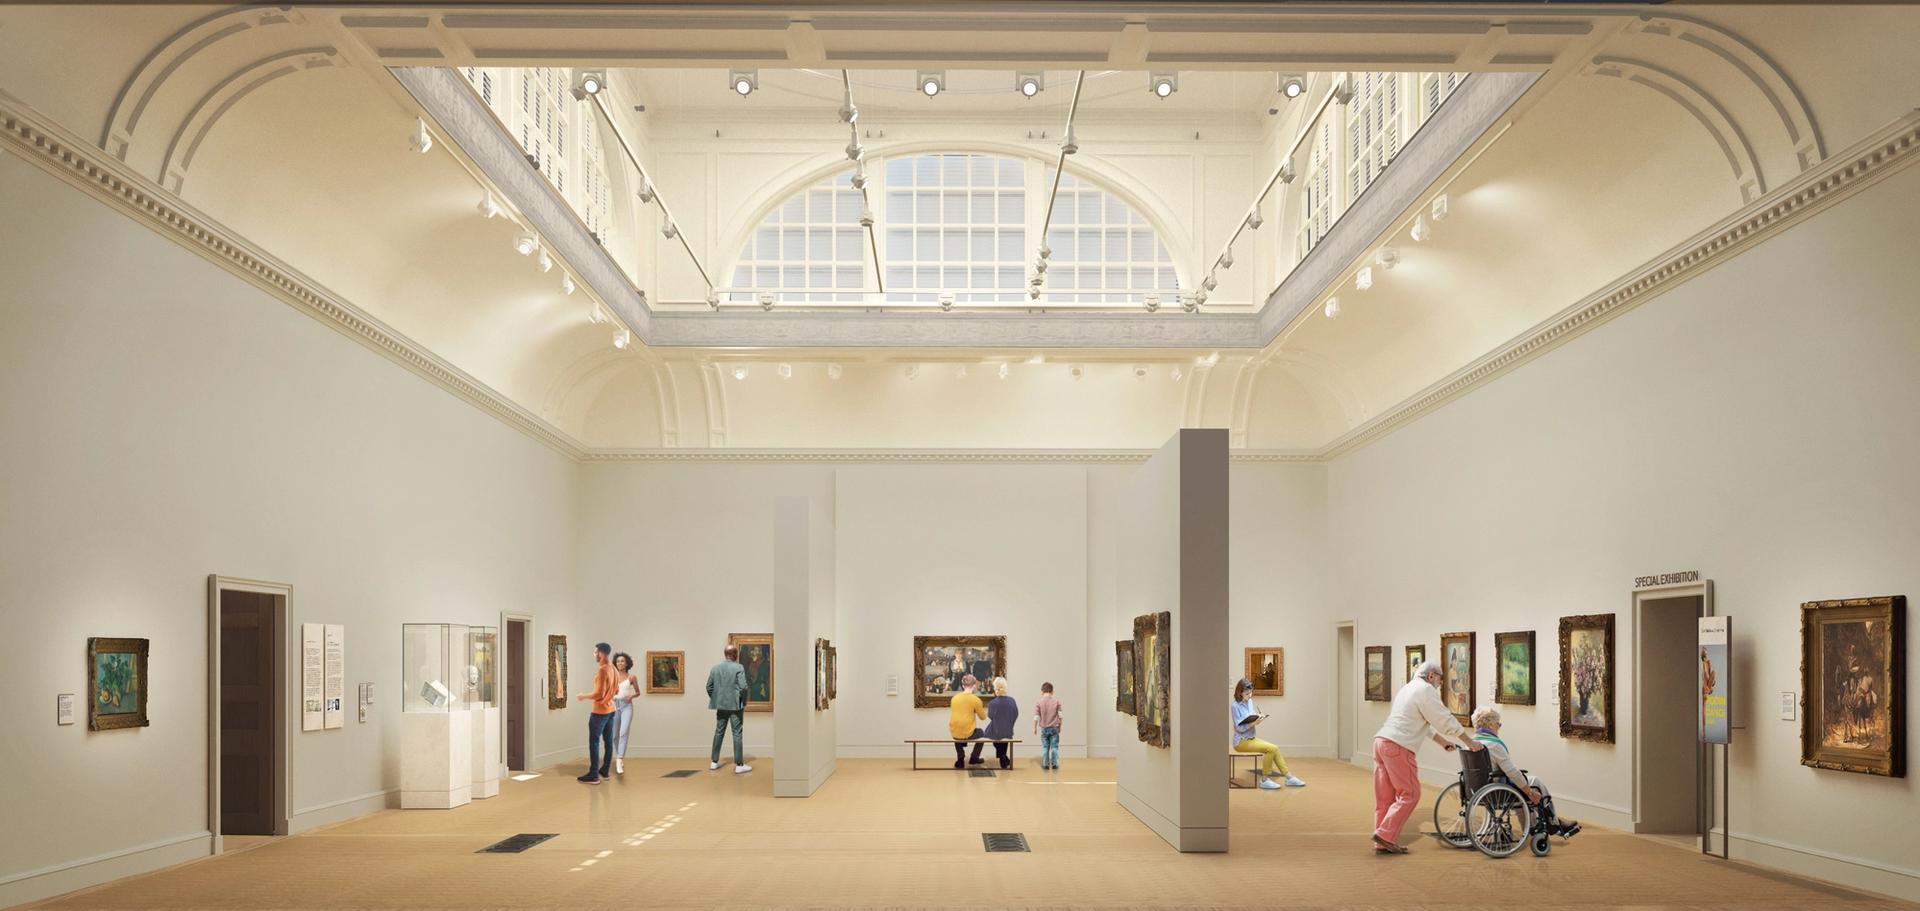 A rendering of the redeveloped Great Room in the Courtauld Gallery Photo: Nissen Richards Studio